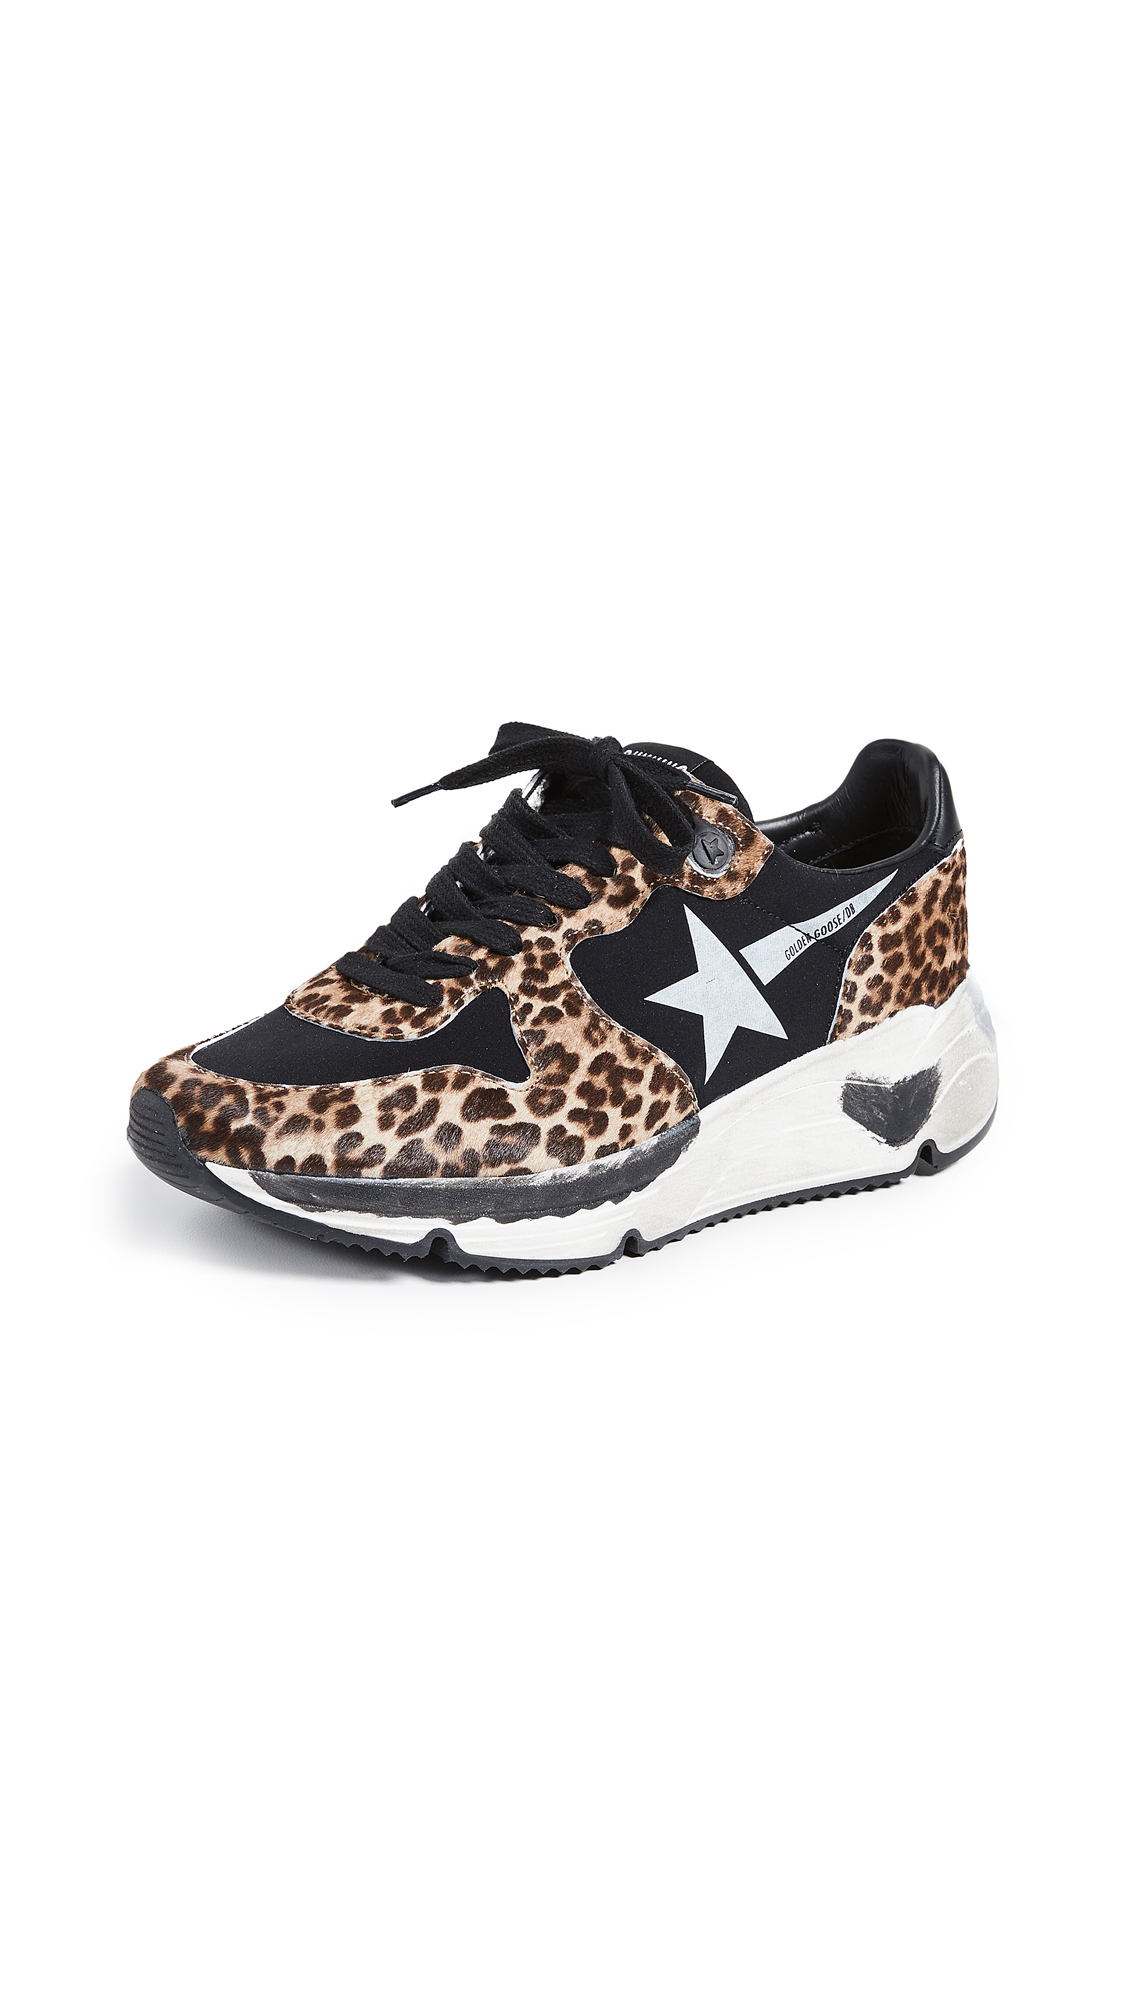 Golden Goose Running Sole Sneakers - Leopard/White